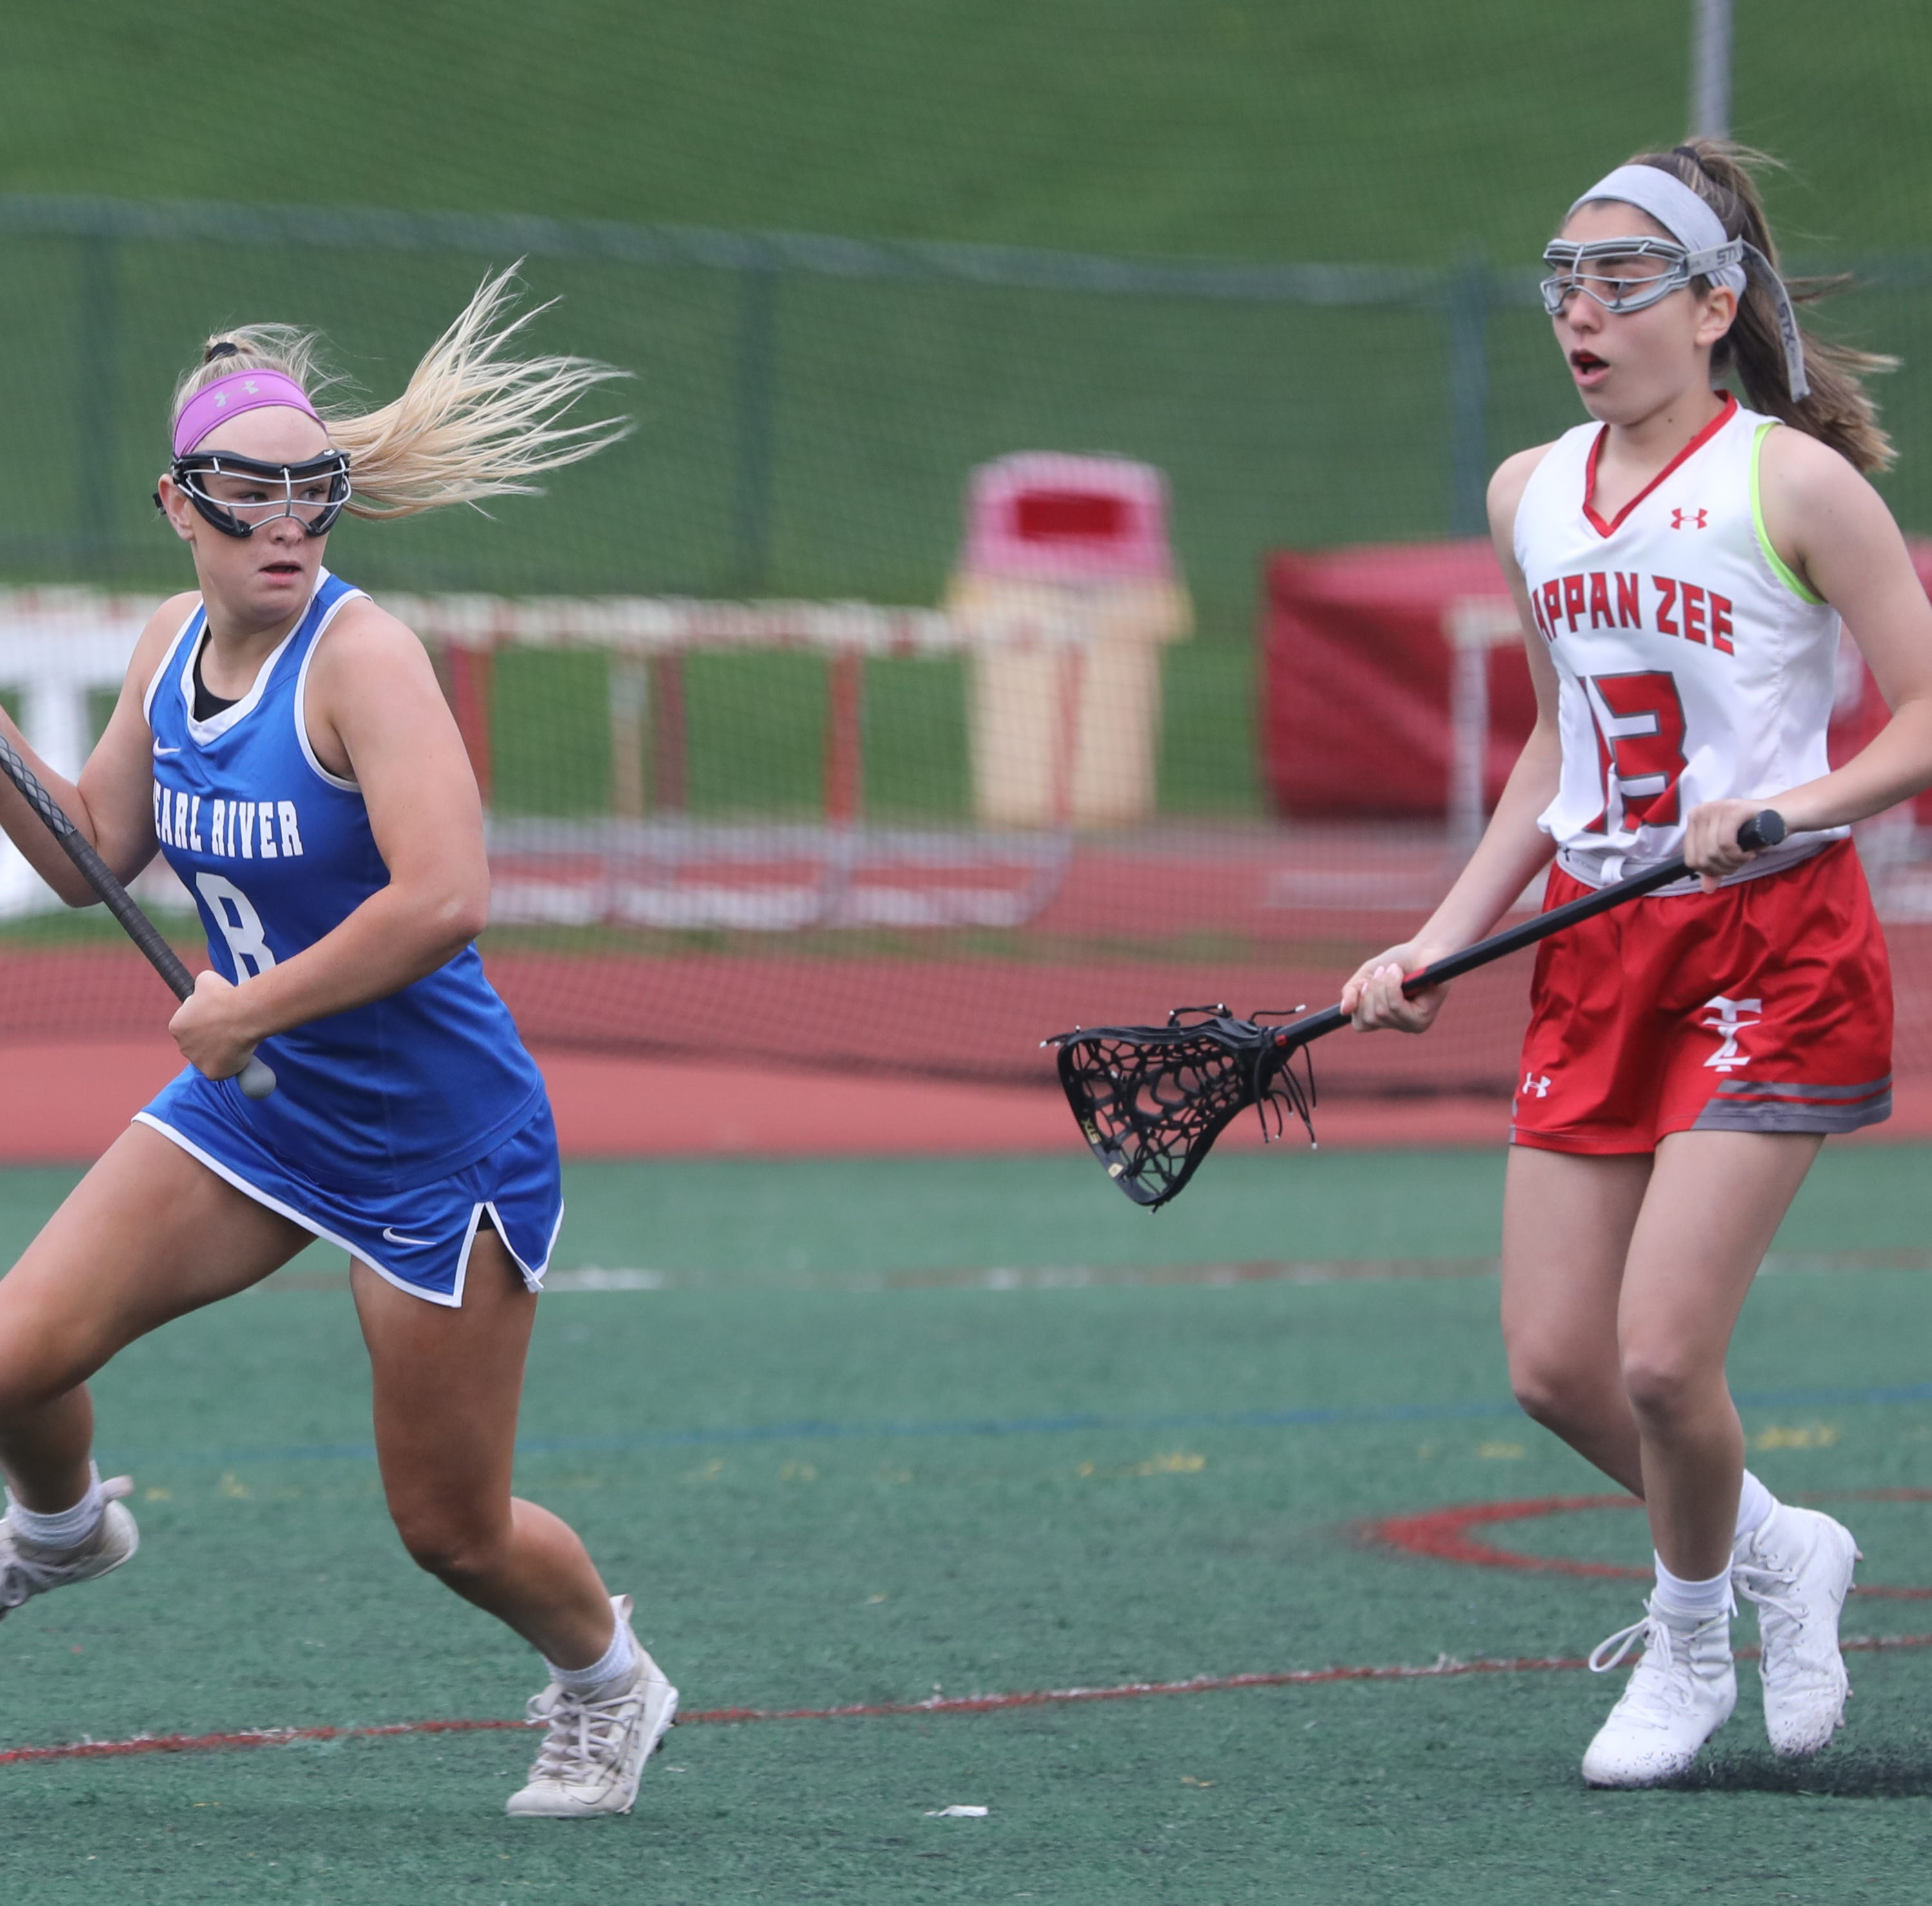 Expected to die after birth, Pearl River's Lauren Sullivan will play college lacrosse